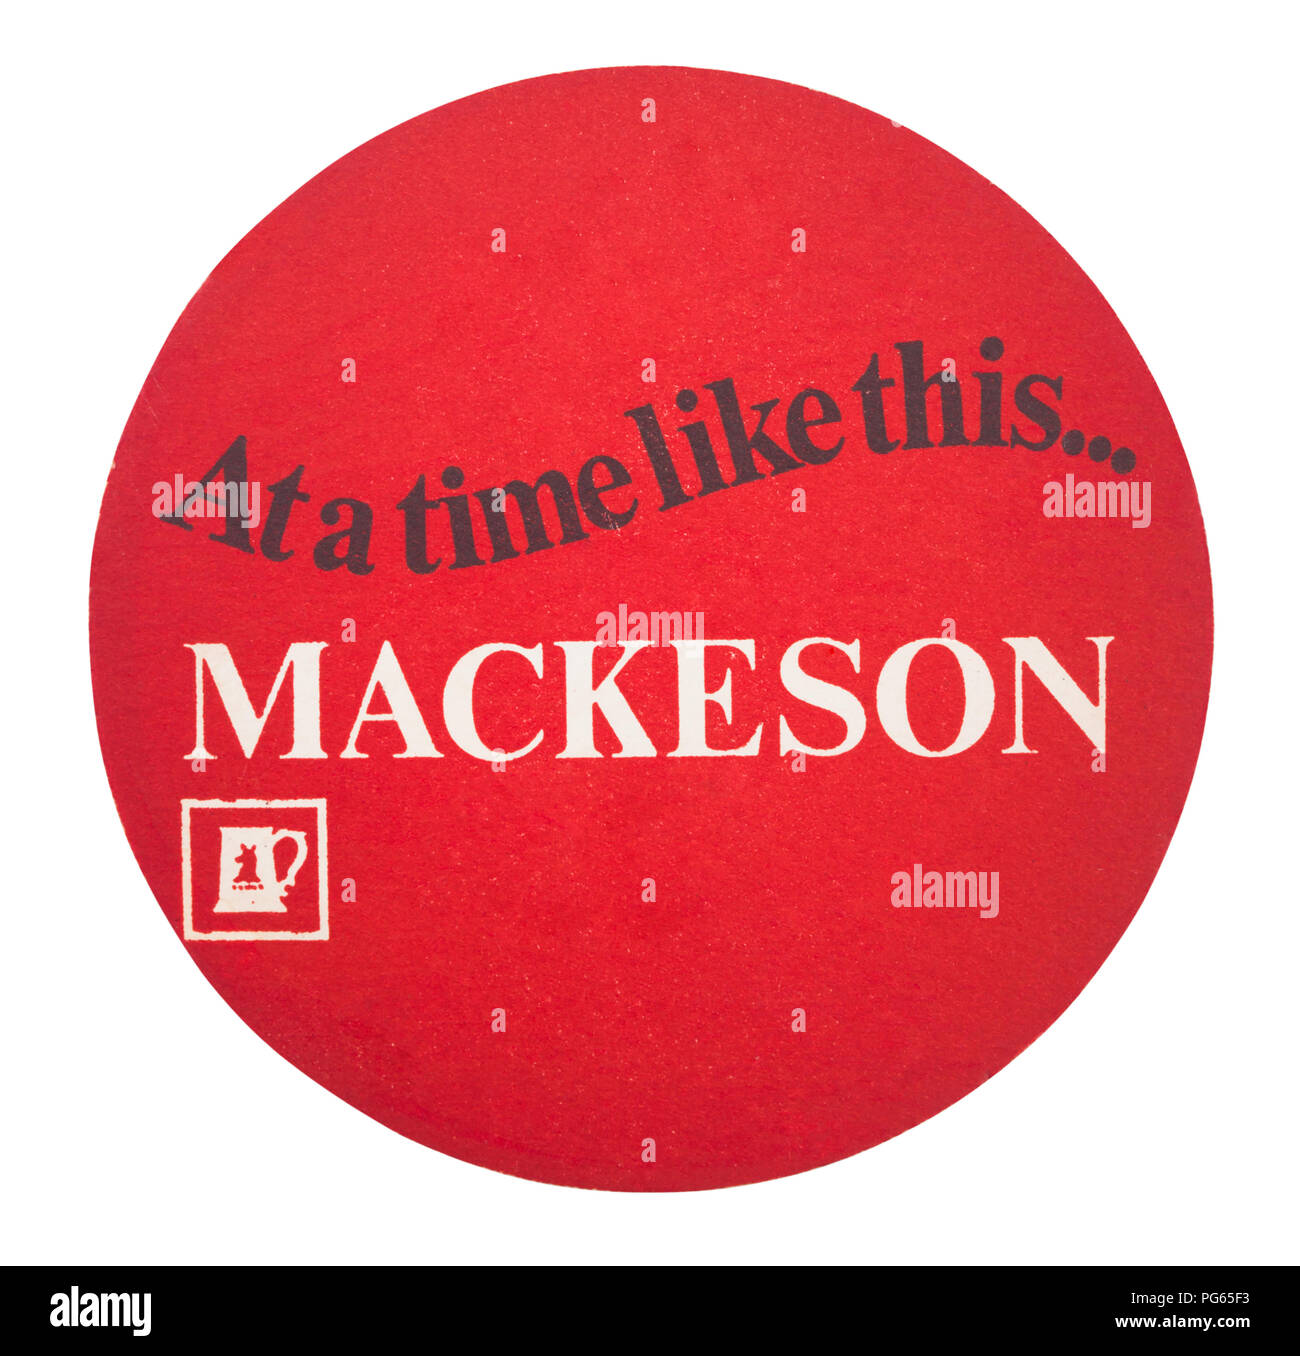 LONDON, UK - AUGUST 22, 2018: Mackeson paper beer beermat coaster isolated on white background. - Stock Image